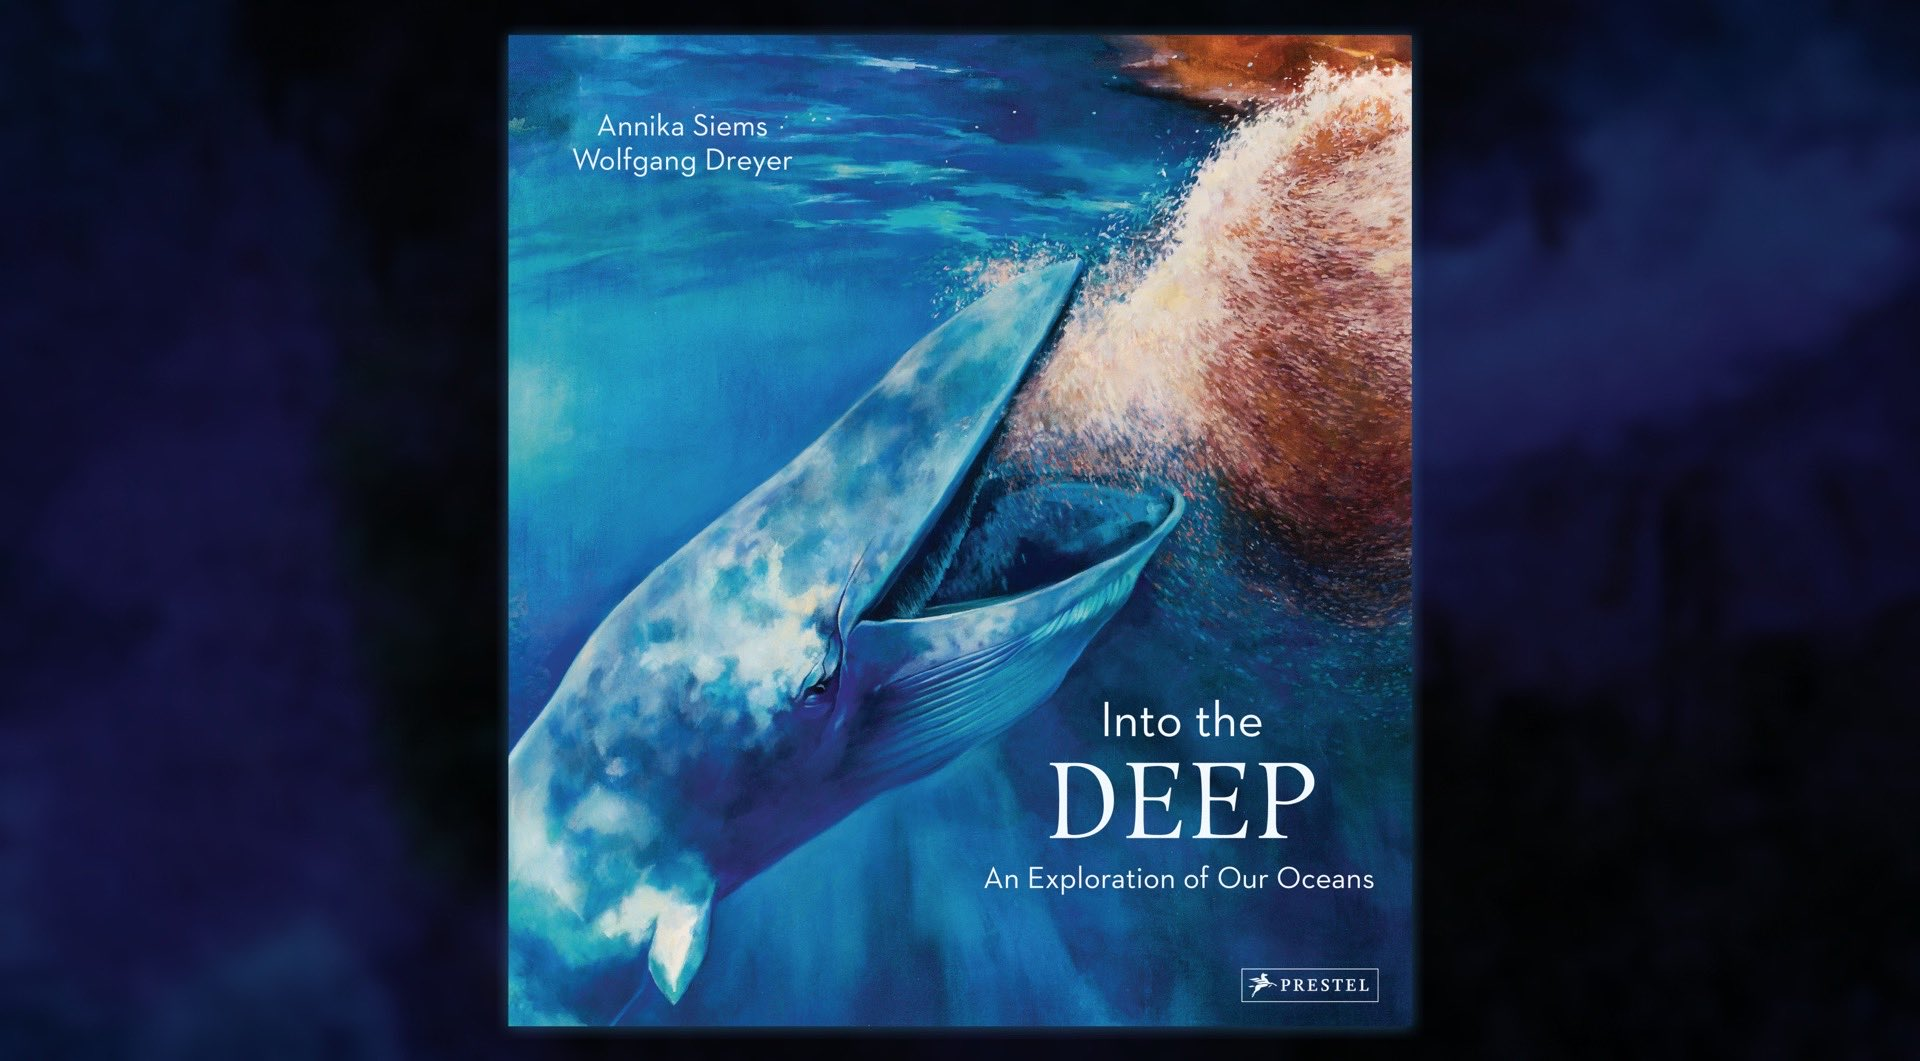 into-the-deep-by-wolfgang-dreyer-and-annika-siems